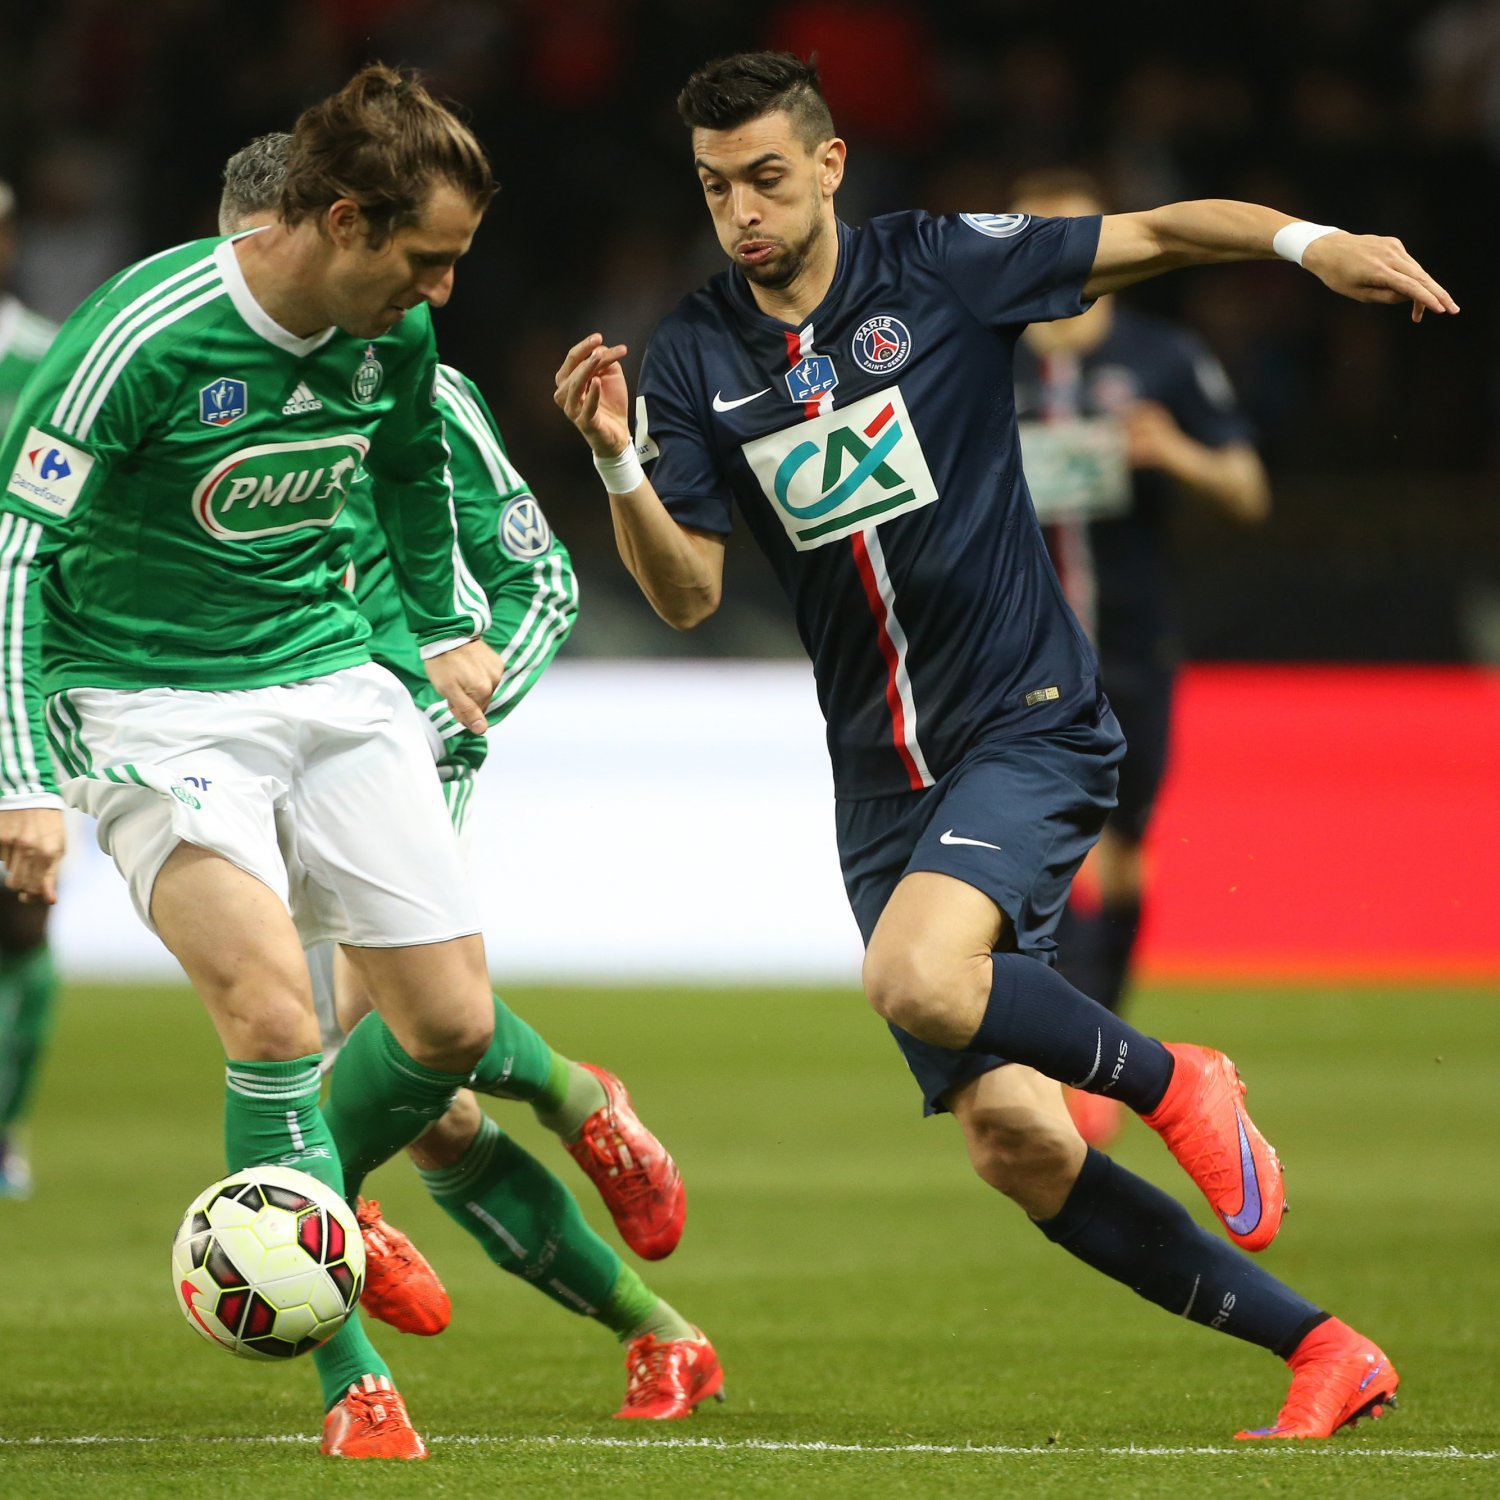 St etienne vs psg soccerway news